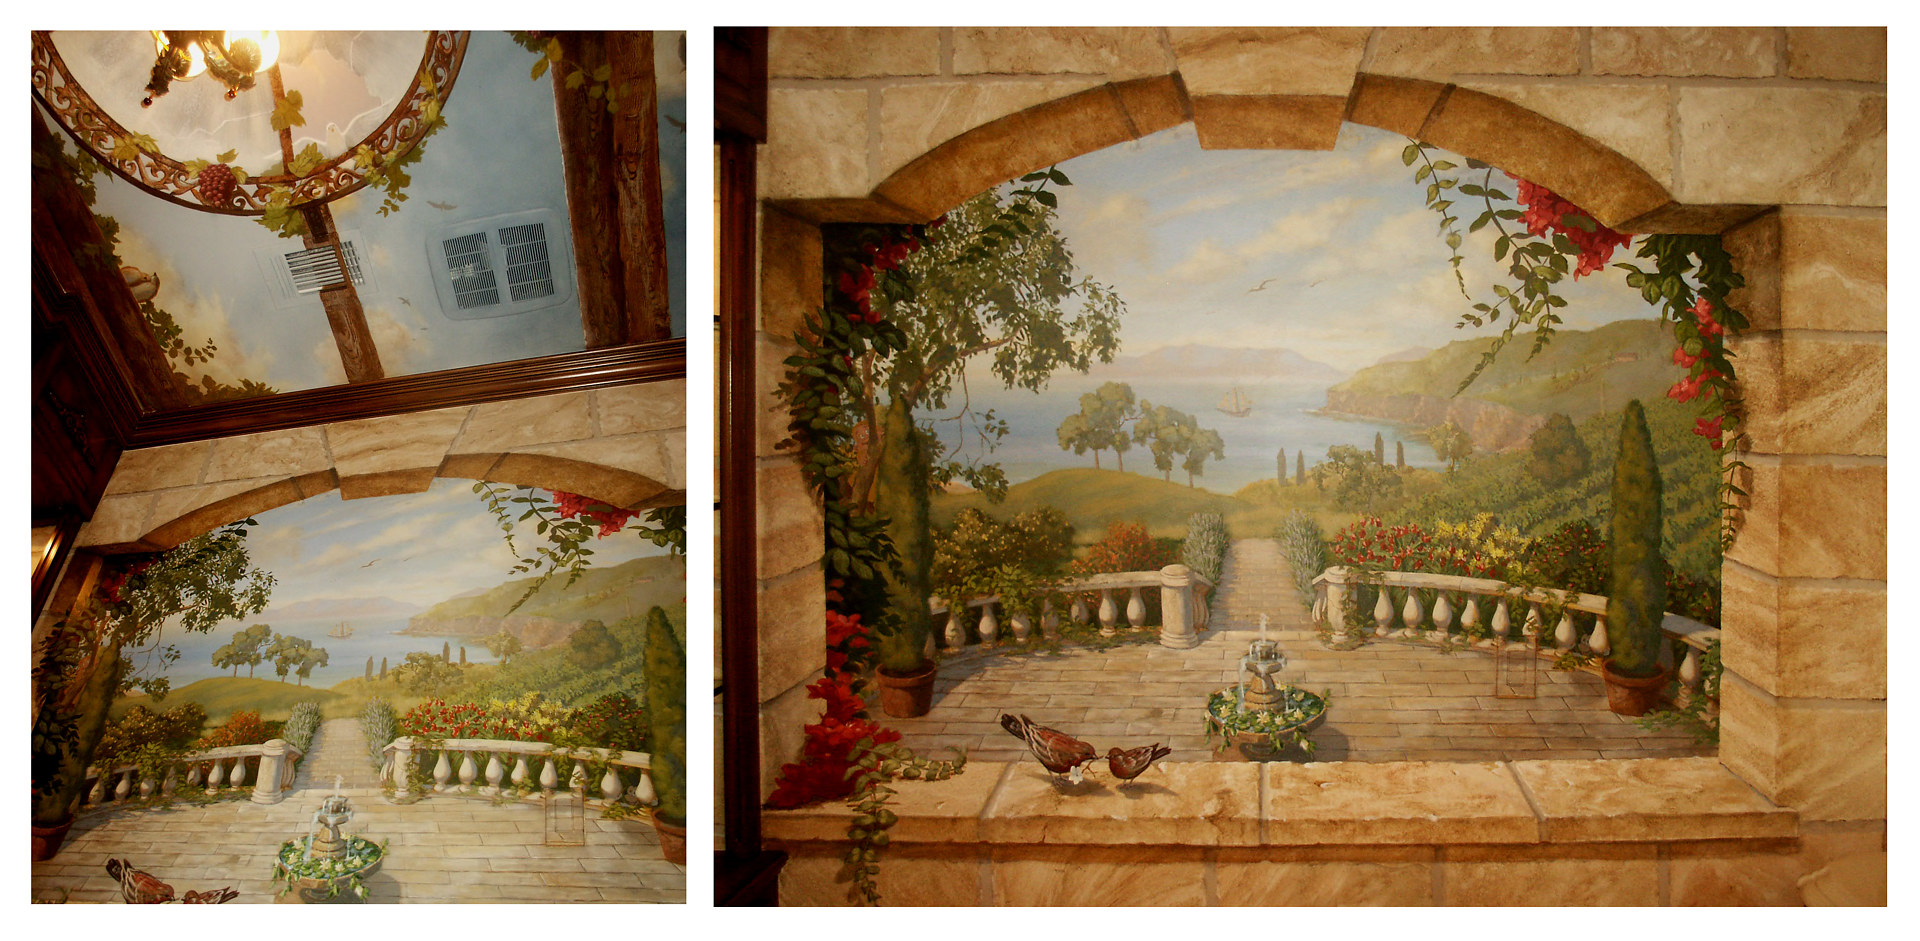 Powder Room of Faux Stone and Murals by Robert Milling